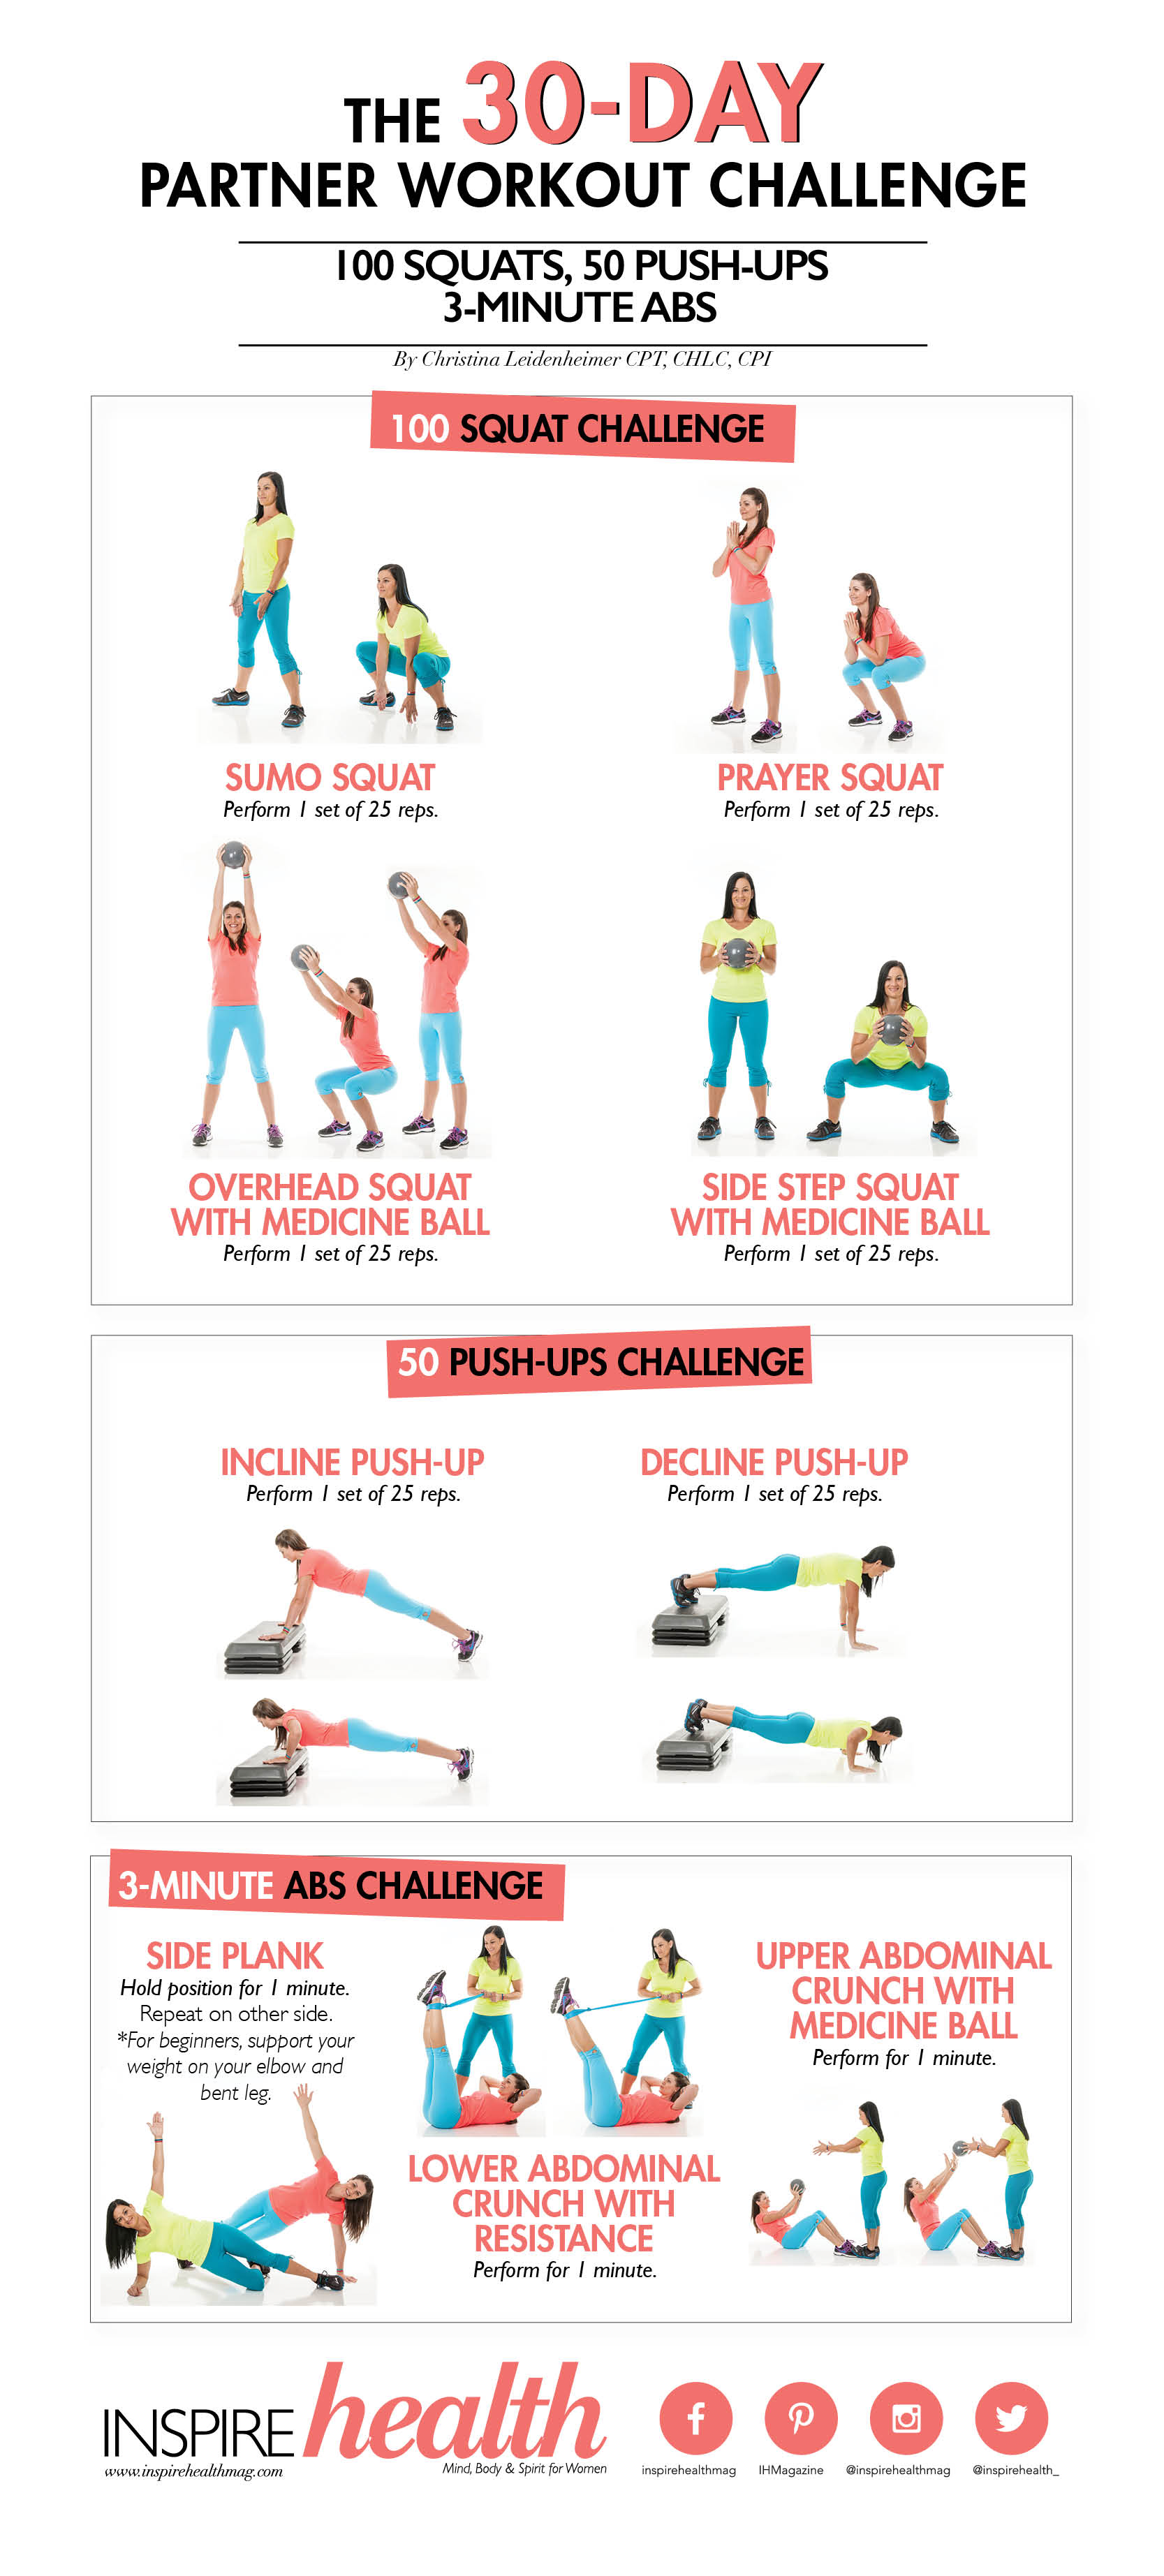 The 30-Day Partner Workout Challenge